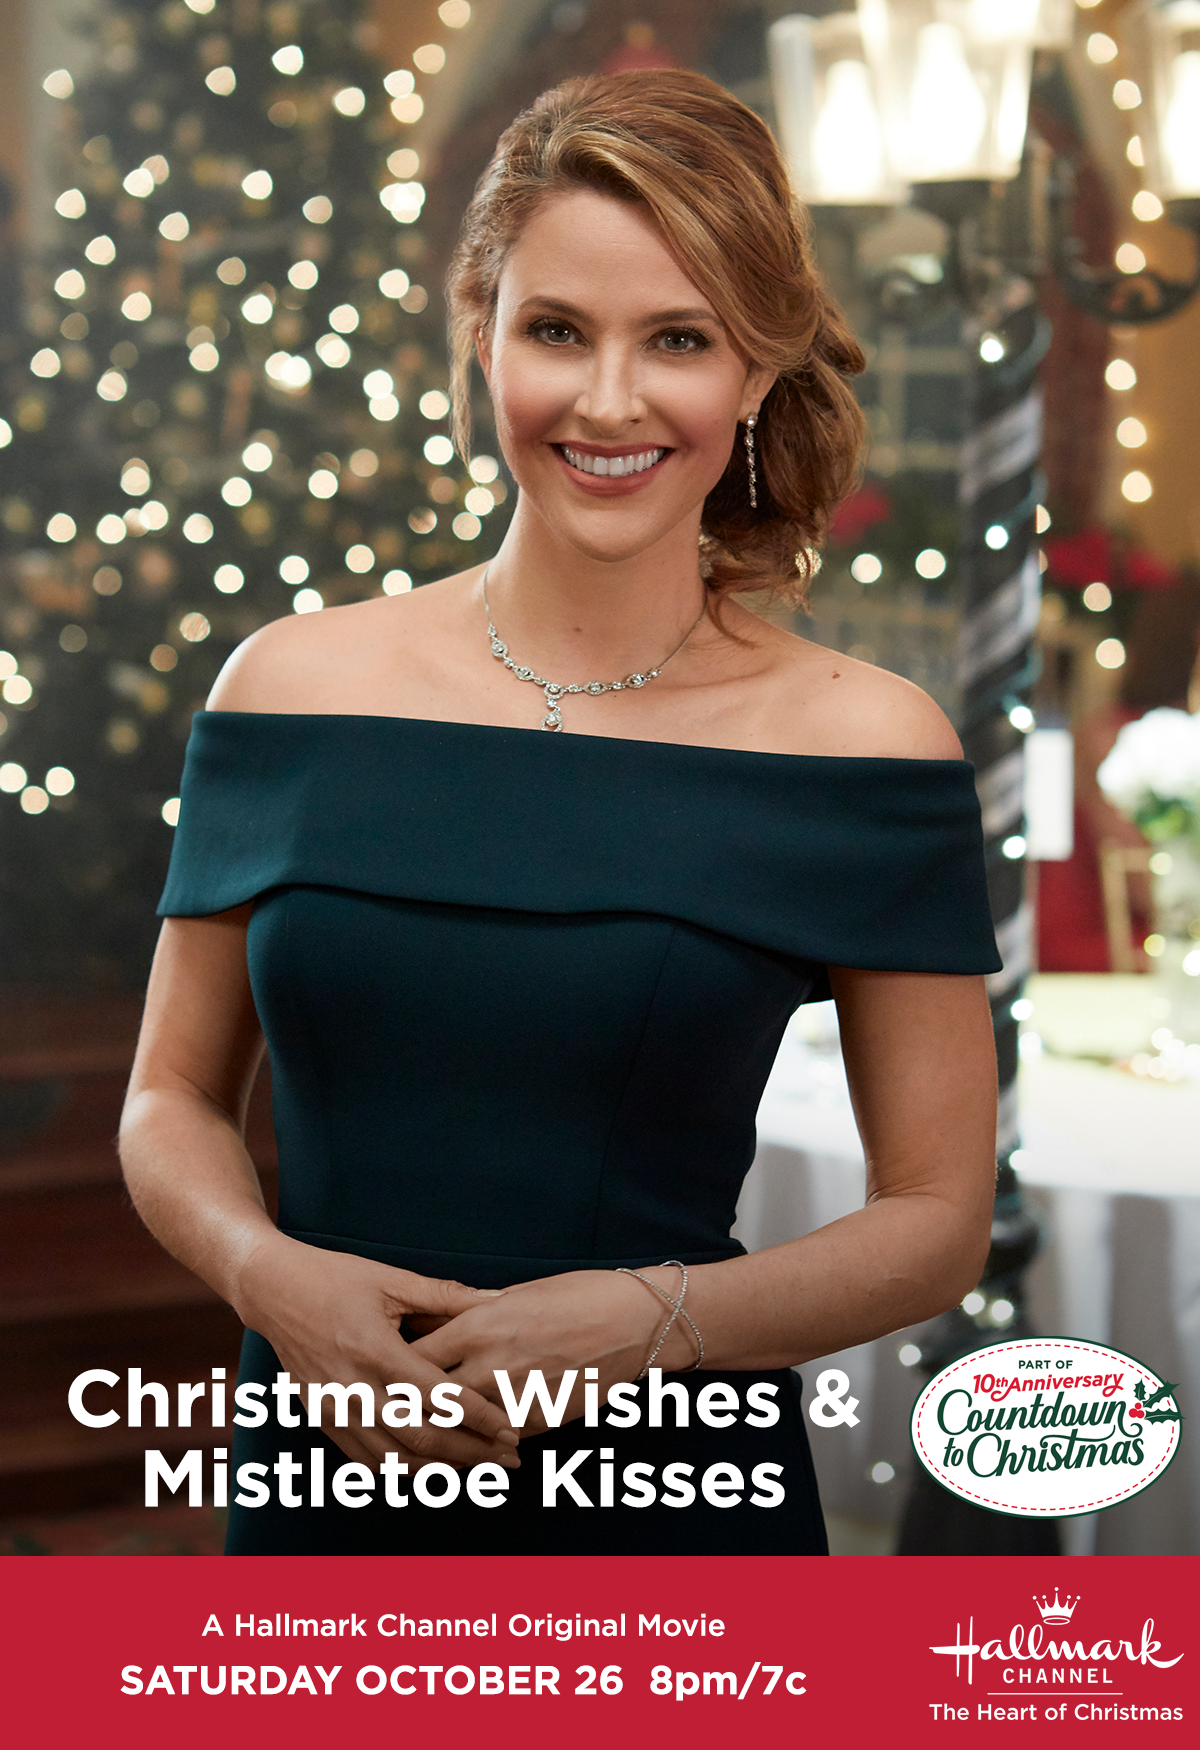 Jill Wagner stars in the first Countdown to Christmas